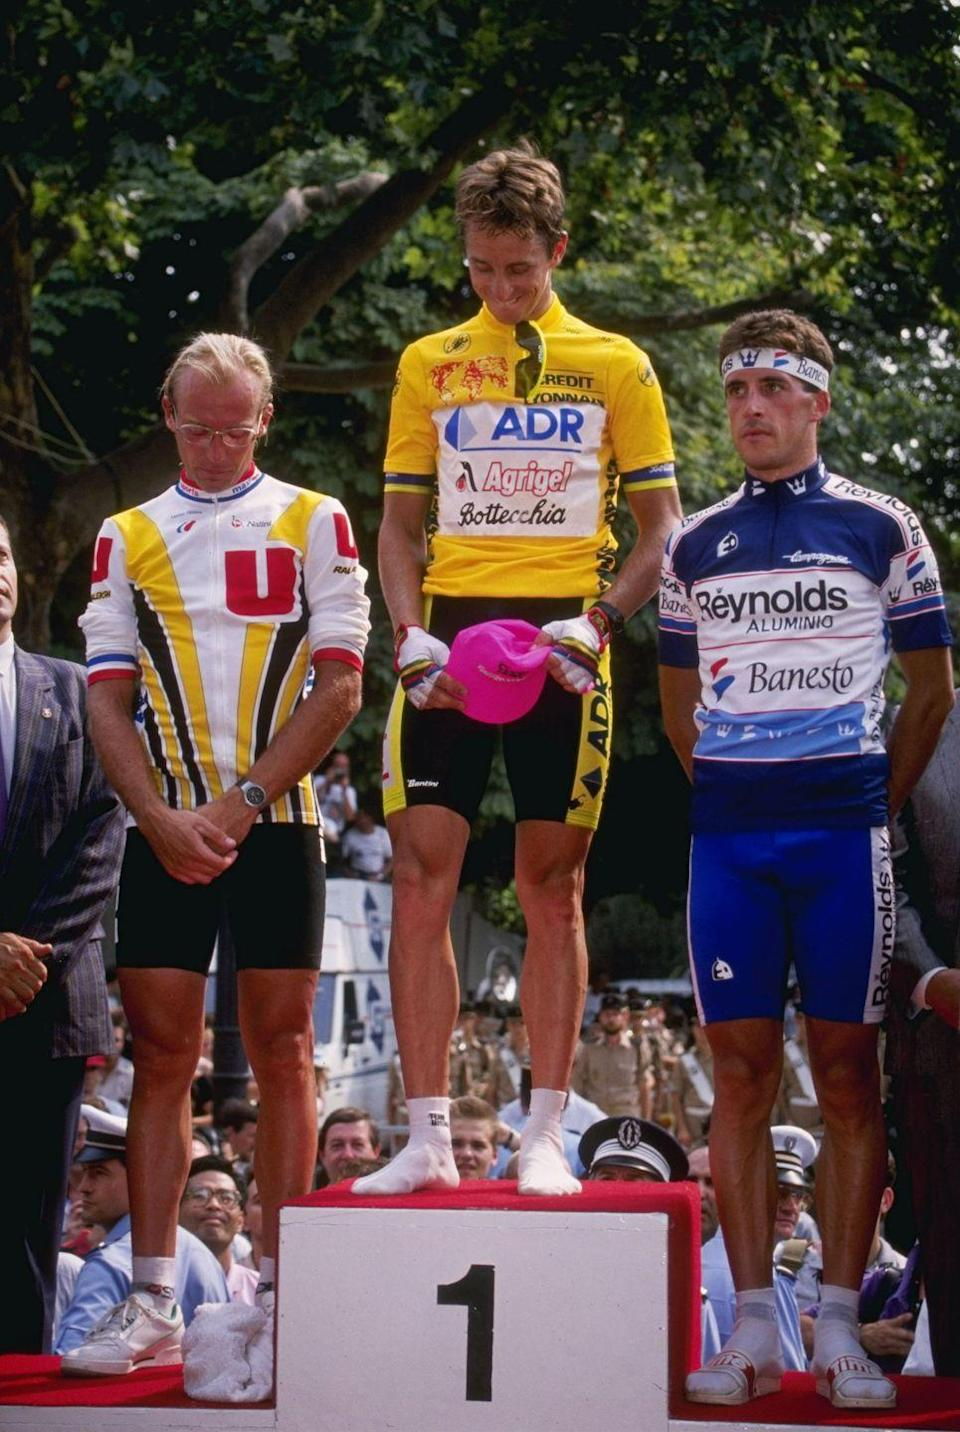 """<p>No final Tour stage has ever shocked the racing world like the 1989 Tour, when Greg LeMond clawed 58 seconds out of yellow jersey holder Laurent Fignon in just 24.5 kilometers with a stunning time trial ride. </p><p>But the final-day fireworks doesn't tell you that the '89 Tour was a see-saw battle for the entire race. Fignon won the Tour in 1983 and '84 but battled tendon issues in his knee and ankle in the following years. In 1989, he was finally back in top shape, having won May's Giro d'Italia (LeMond finished 39th). </p><p>The two traded yellow back and forth no fewer than five times during the Tour, separated by just a handful of seconds for much of the race. Riding for the underpowered ADR team, LeMond capitalized on time trials, where team strength and tactics aren't a factor, and seized yellow with a Stage 5 time trial win. He lost it shortly after to Fignon in the Pyrenees. Another strong time trial performance in Stage 15 reclaimed the lead for LeMond, but Fignon deployed his powerful Super-U team to take it back on Stage 17's Alpe d'Huez finish. He added 24 more seconds the next day, which many thought would be a comfortable enough margin to ensure the Frenchman's third Tour win ahead of the short, slightly downhill final stage.</p><p>LeMond had experimented with aero gear in the previous time trials, using a teardrop-shaped Giro helmet and the now-iconic clip-on handlebars in the 73-kilometer Stage 5 time trial. He donned that gear in the final stage, while Fignon opted to ride without either, choosing a conventional time trial bike with only cowhorn bars, and going bareheaded (<a href=""""https://www.bicycling.com/bikes-gear/a20012793/best-bike-helmets-reviews/"""" rel=""""nofollow noopener"""" target=""""_blank"""" data-ylk=""""slk:helmets"""" class=""""link rapid-noclick-resp"""">helmets</a> weren't mandatory in racing until 2003).</p><p>Much like Primož Roglič in the final TT of the 2020 Tour, Fignon was losing time to LeMond from the start. LeMond opted not to get time split"""